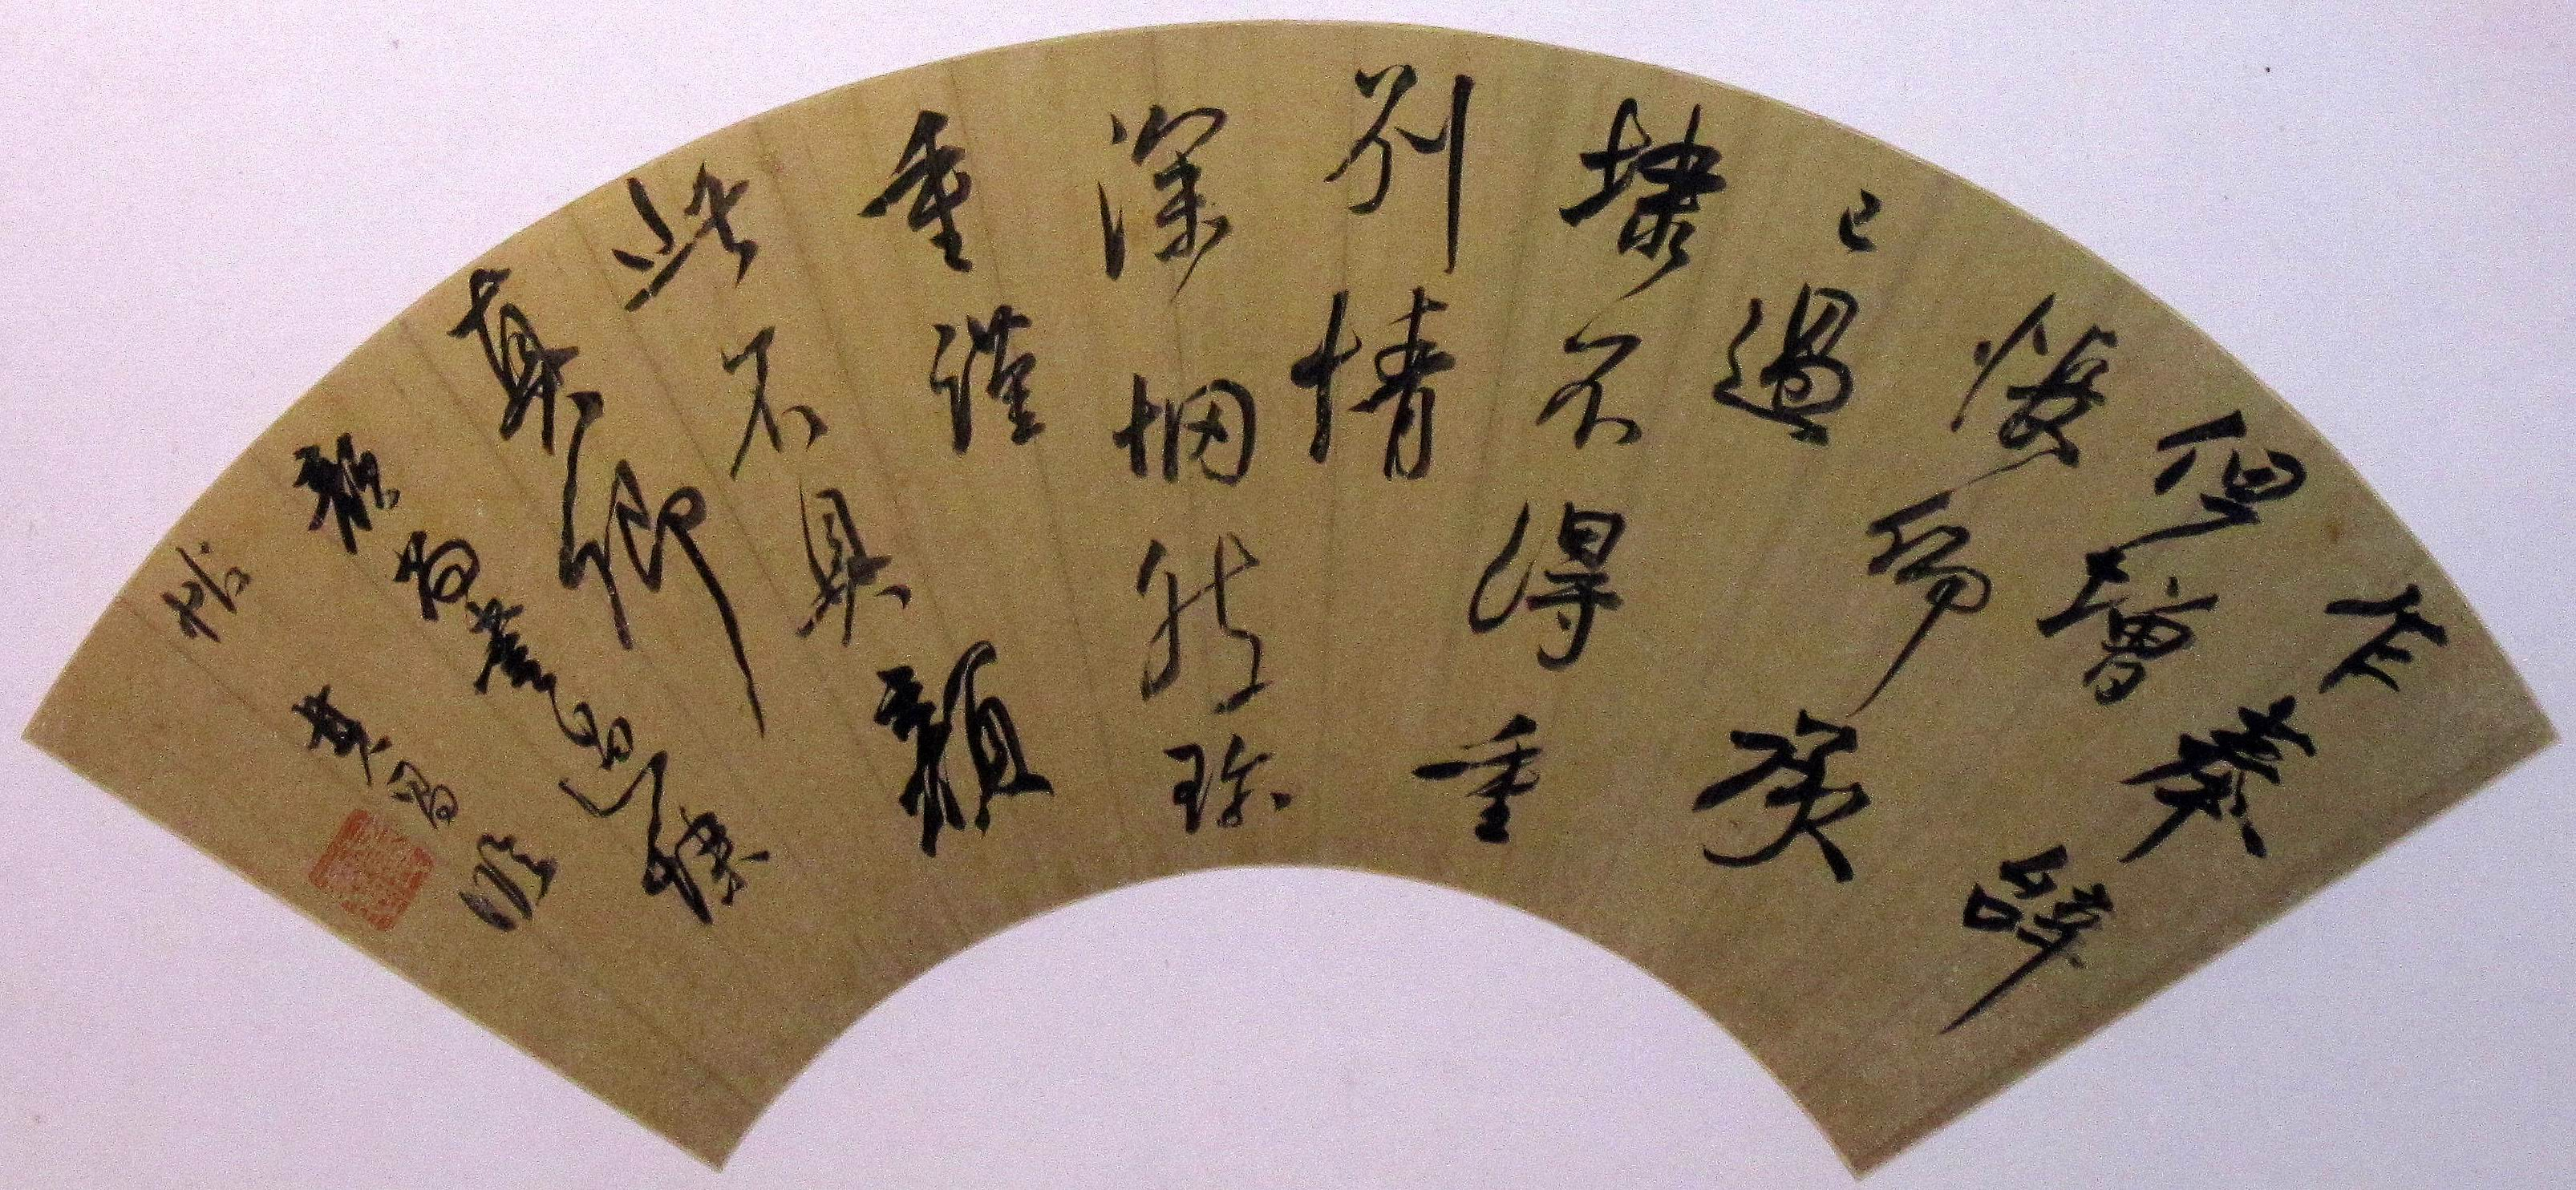 The painting and calligraphy of Dong Qichang